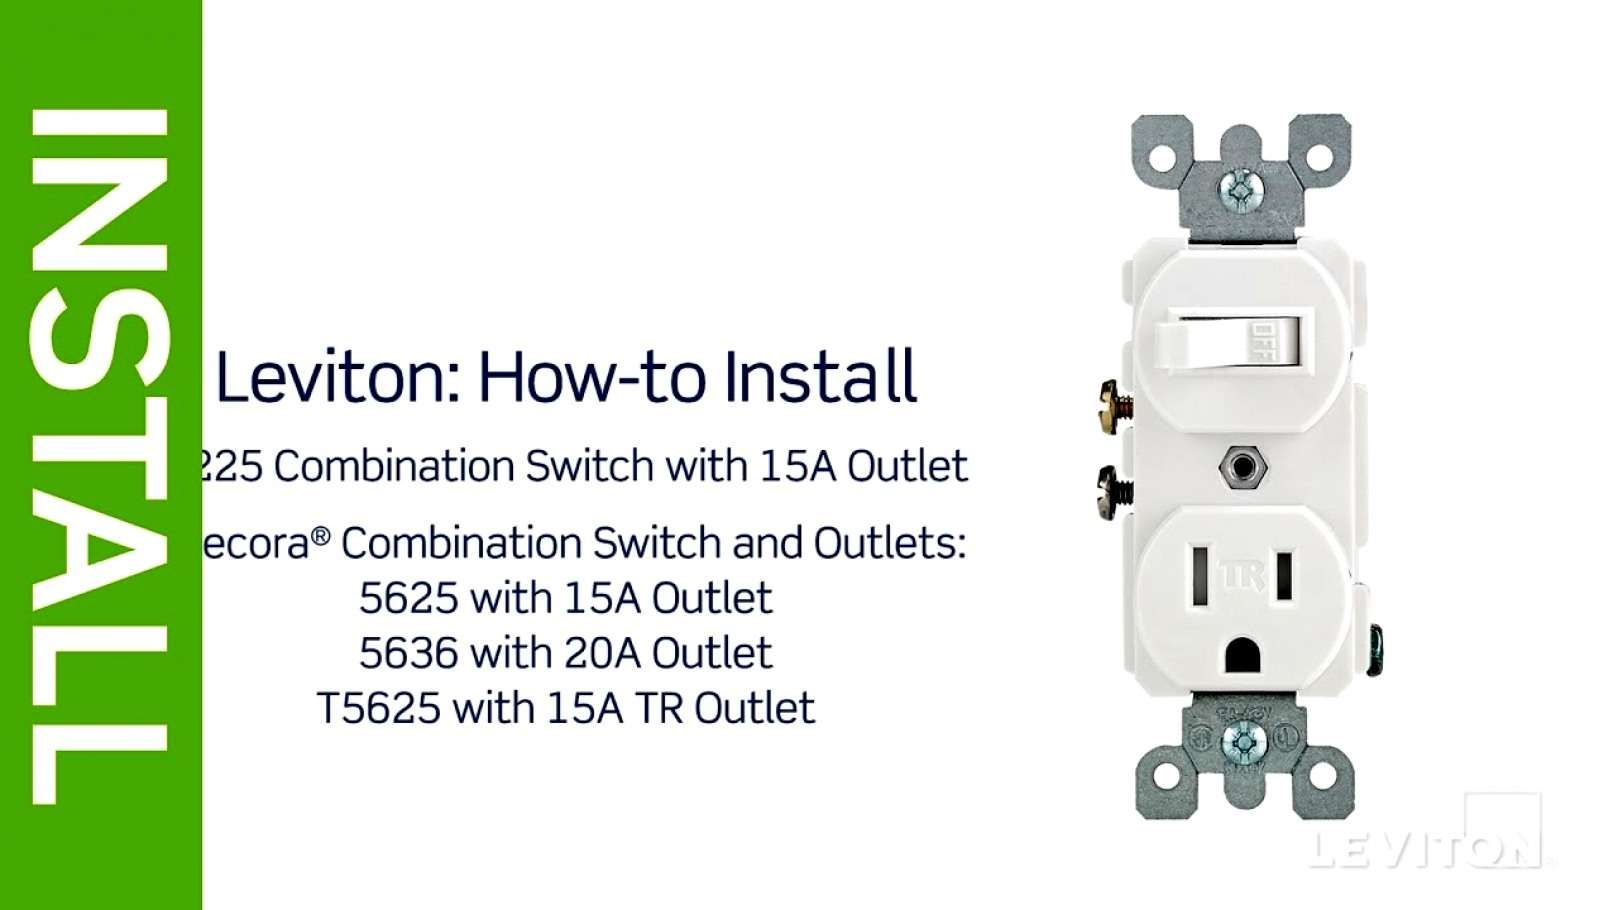 Wiring Diagram Outlets Beautiful Wiring Diagram Outlets Splendid Line Wiring Diagram Help Signalsbrake Light Code For Leviton Outlet Wiring Outlet